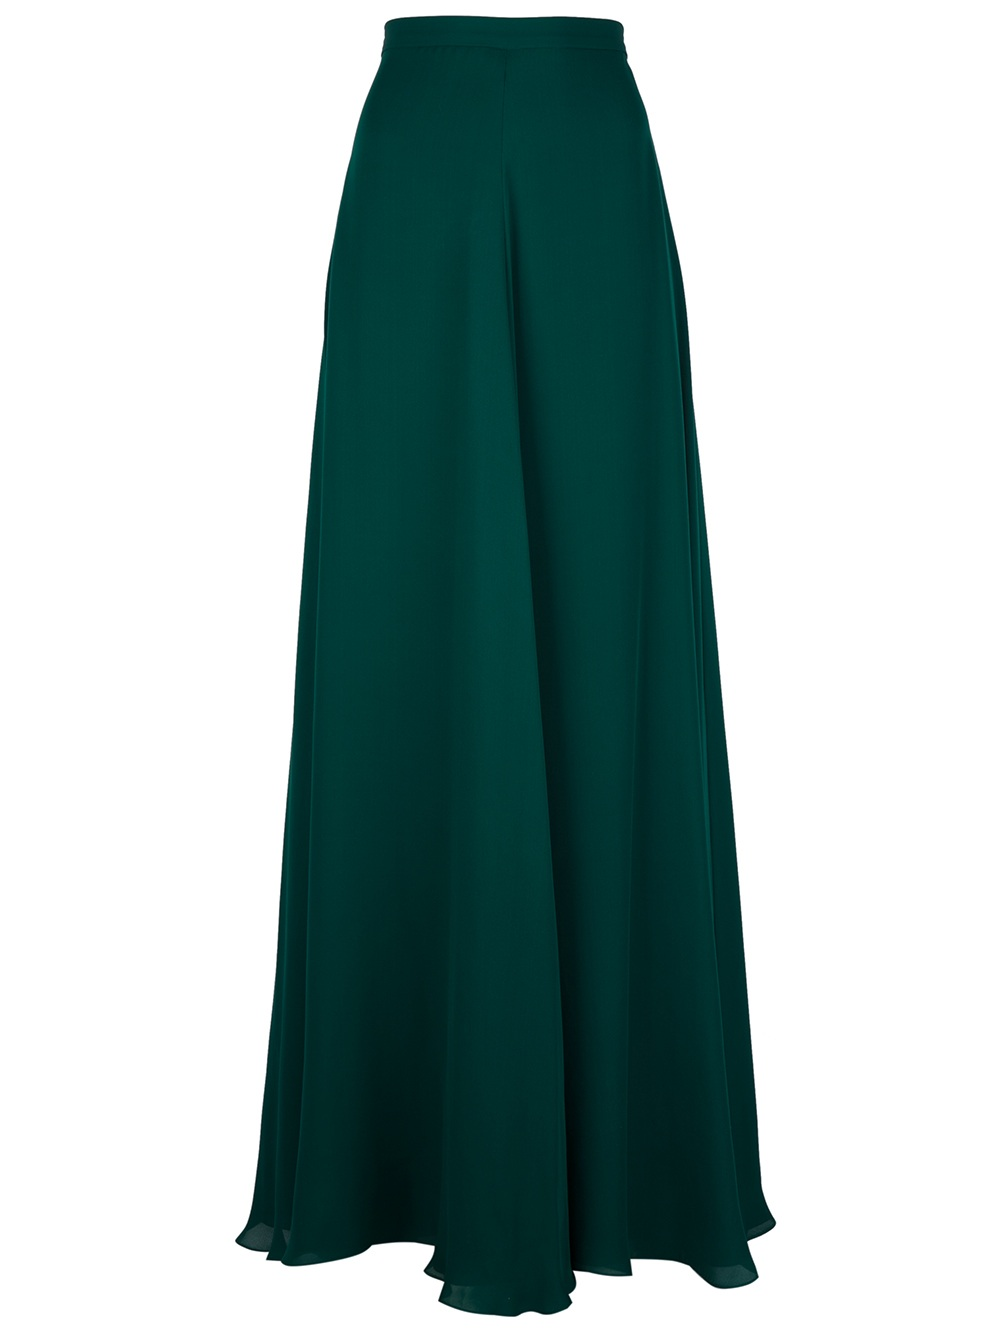 oscar de la renta maxi skirt in green lyst